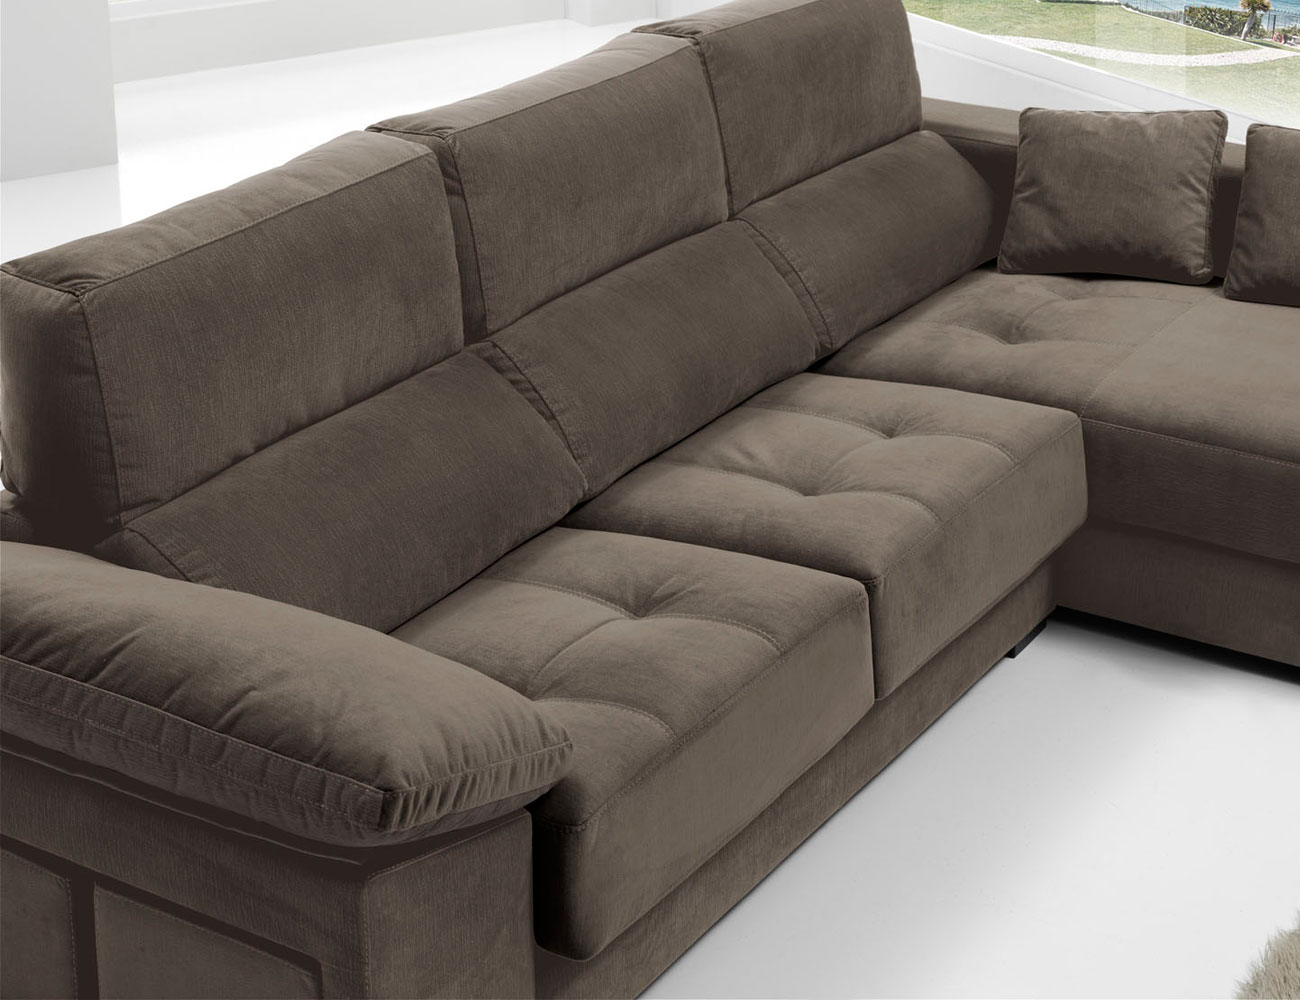 Sofa chaiselongue anti manchas bering pouf 212